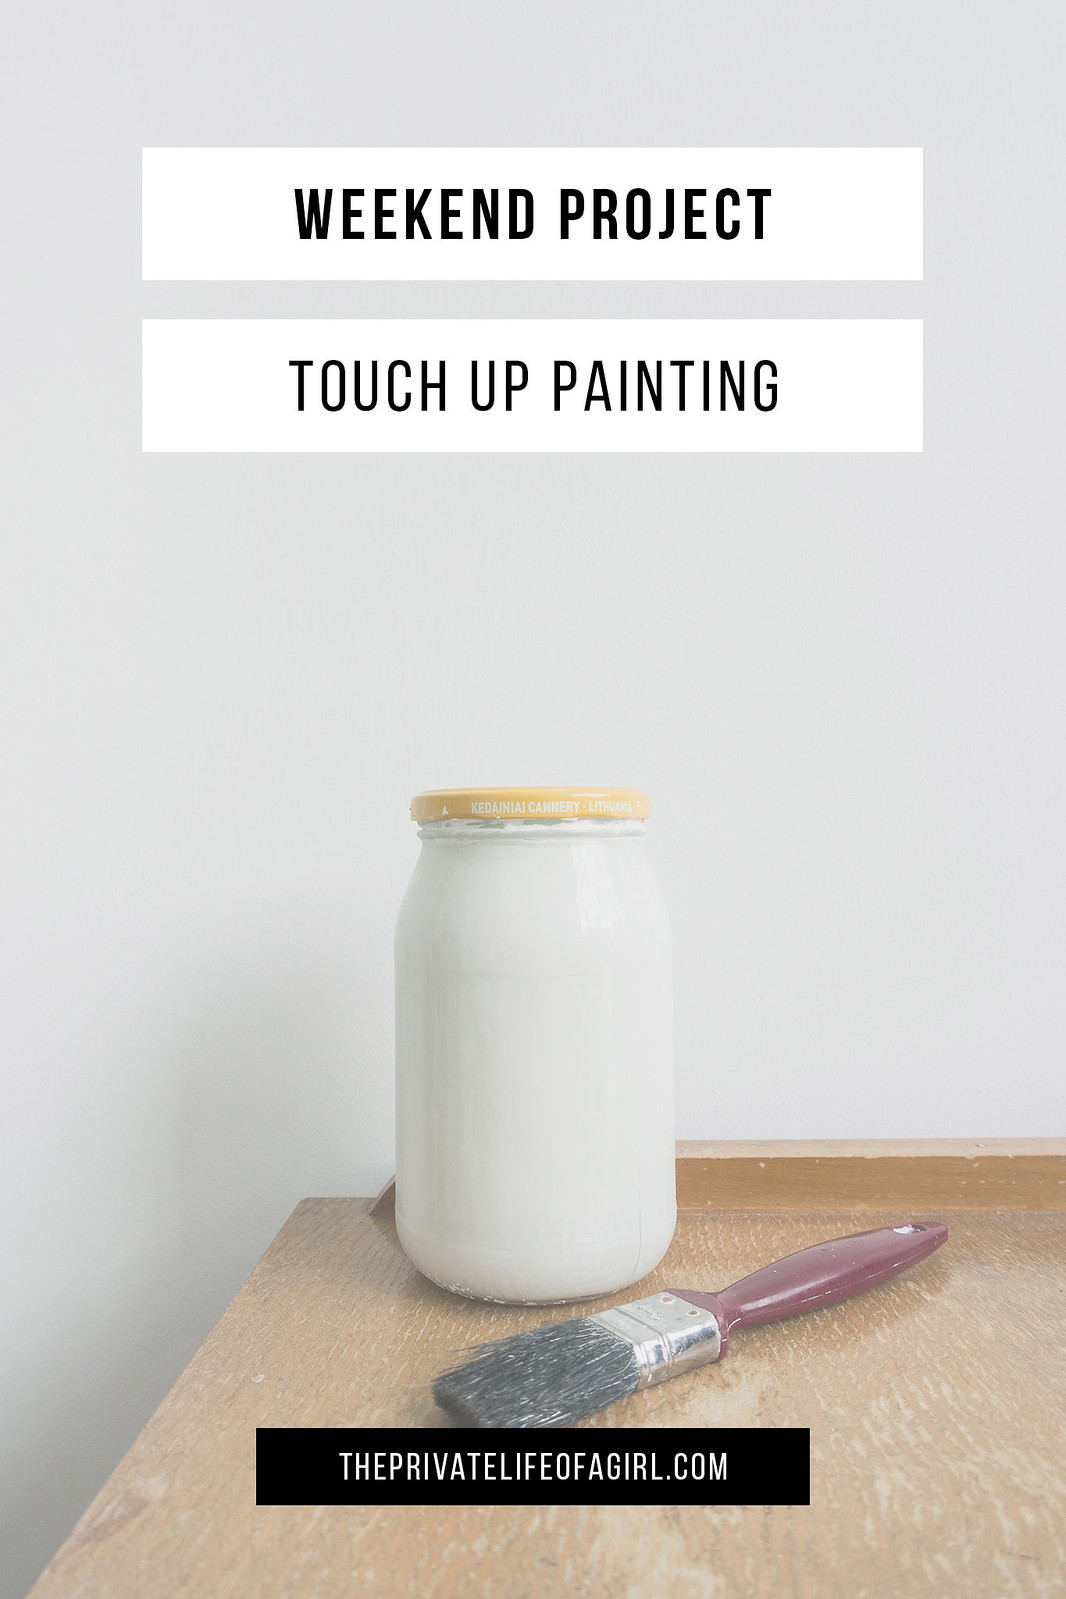 Weekend Project: Touch Up Painting